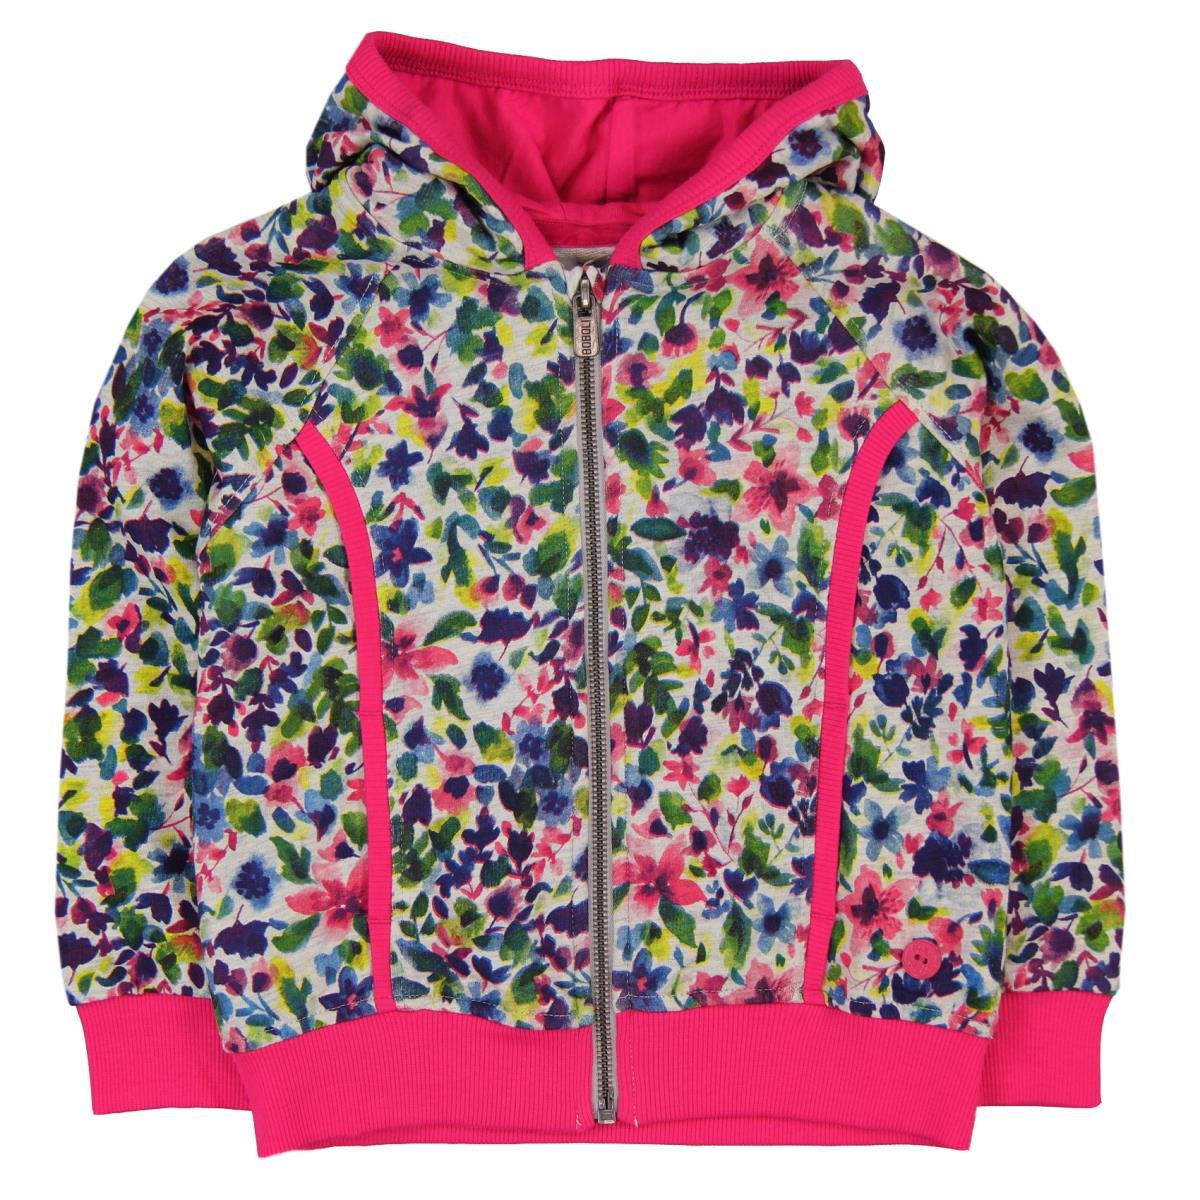 boboli Fleece Jacket For Girl, Felpa Bambina (Print) 3 Anni Bóboli 433123